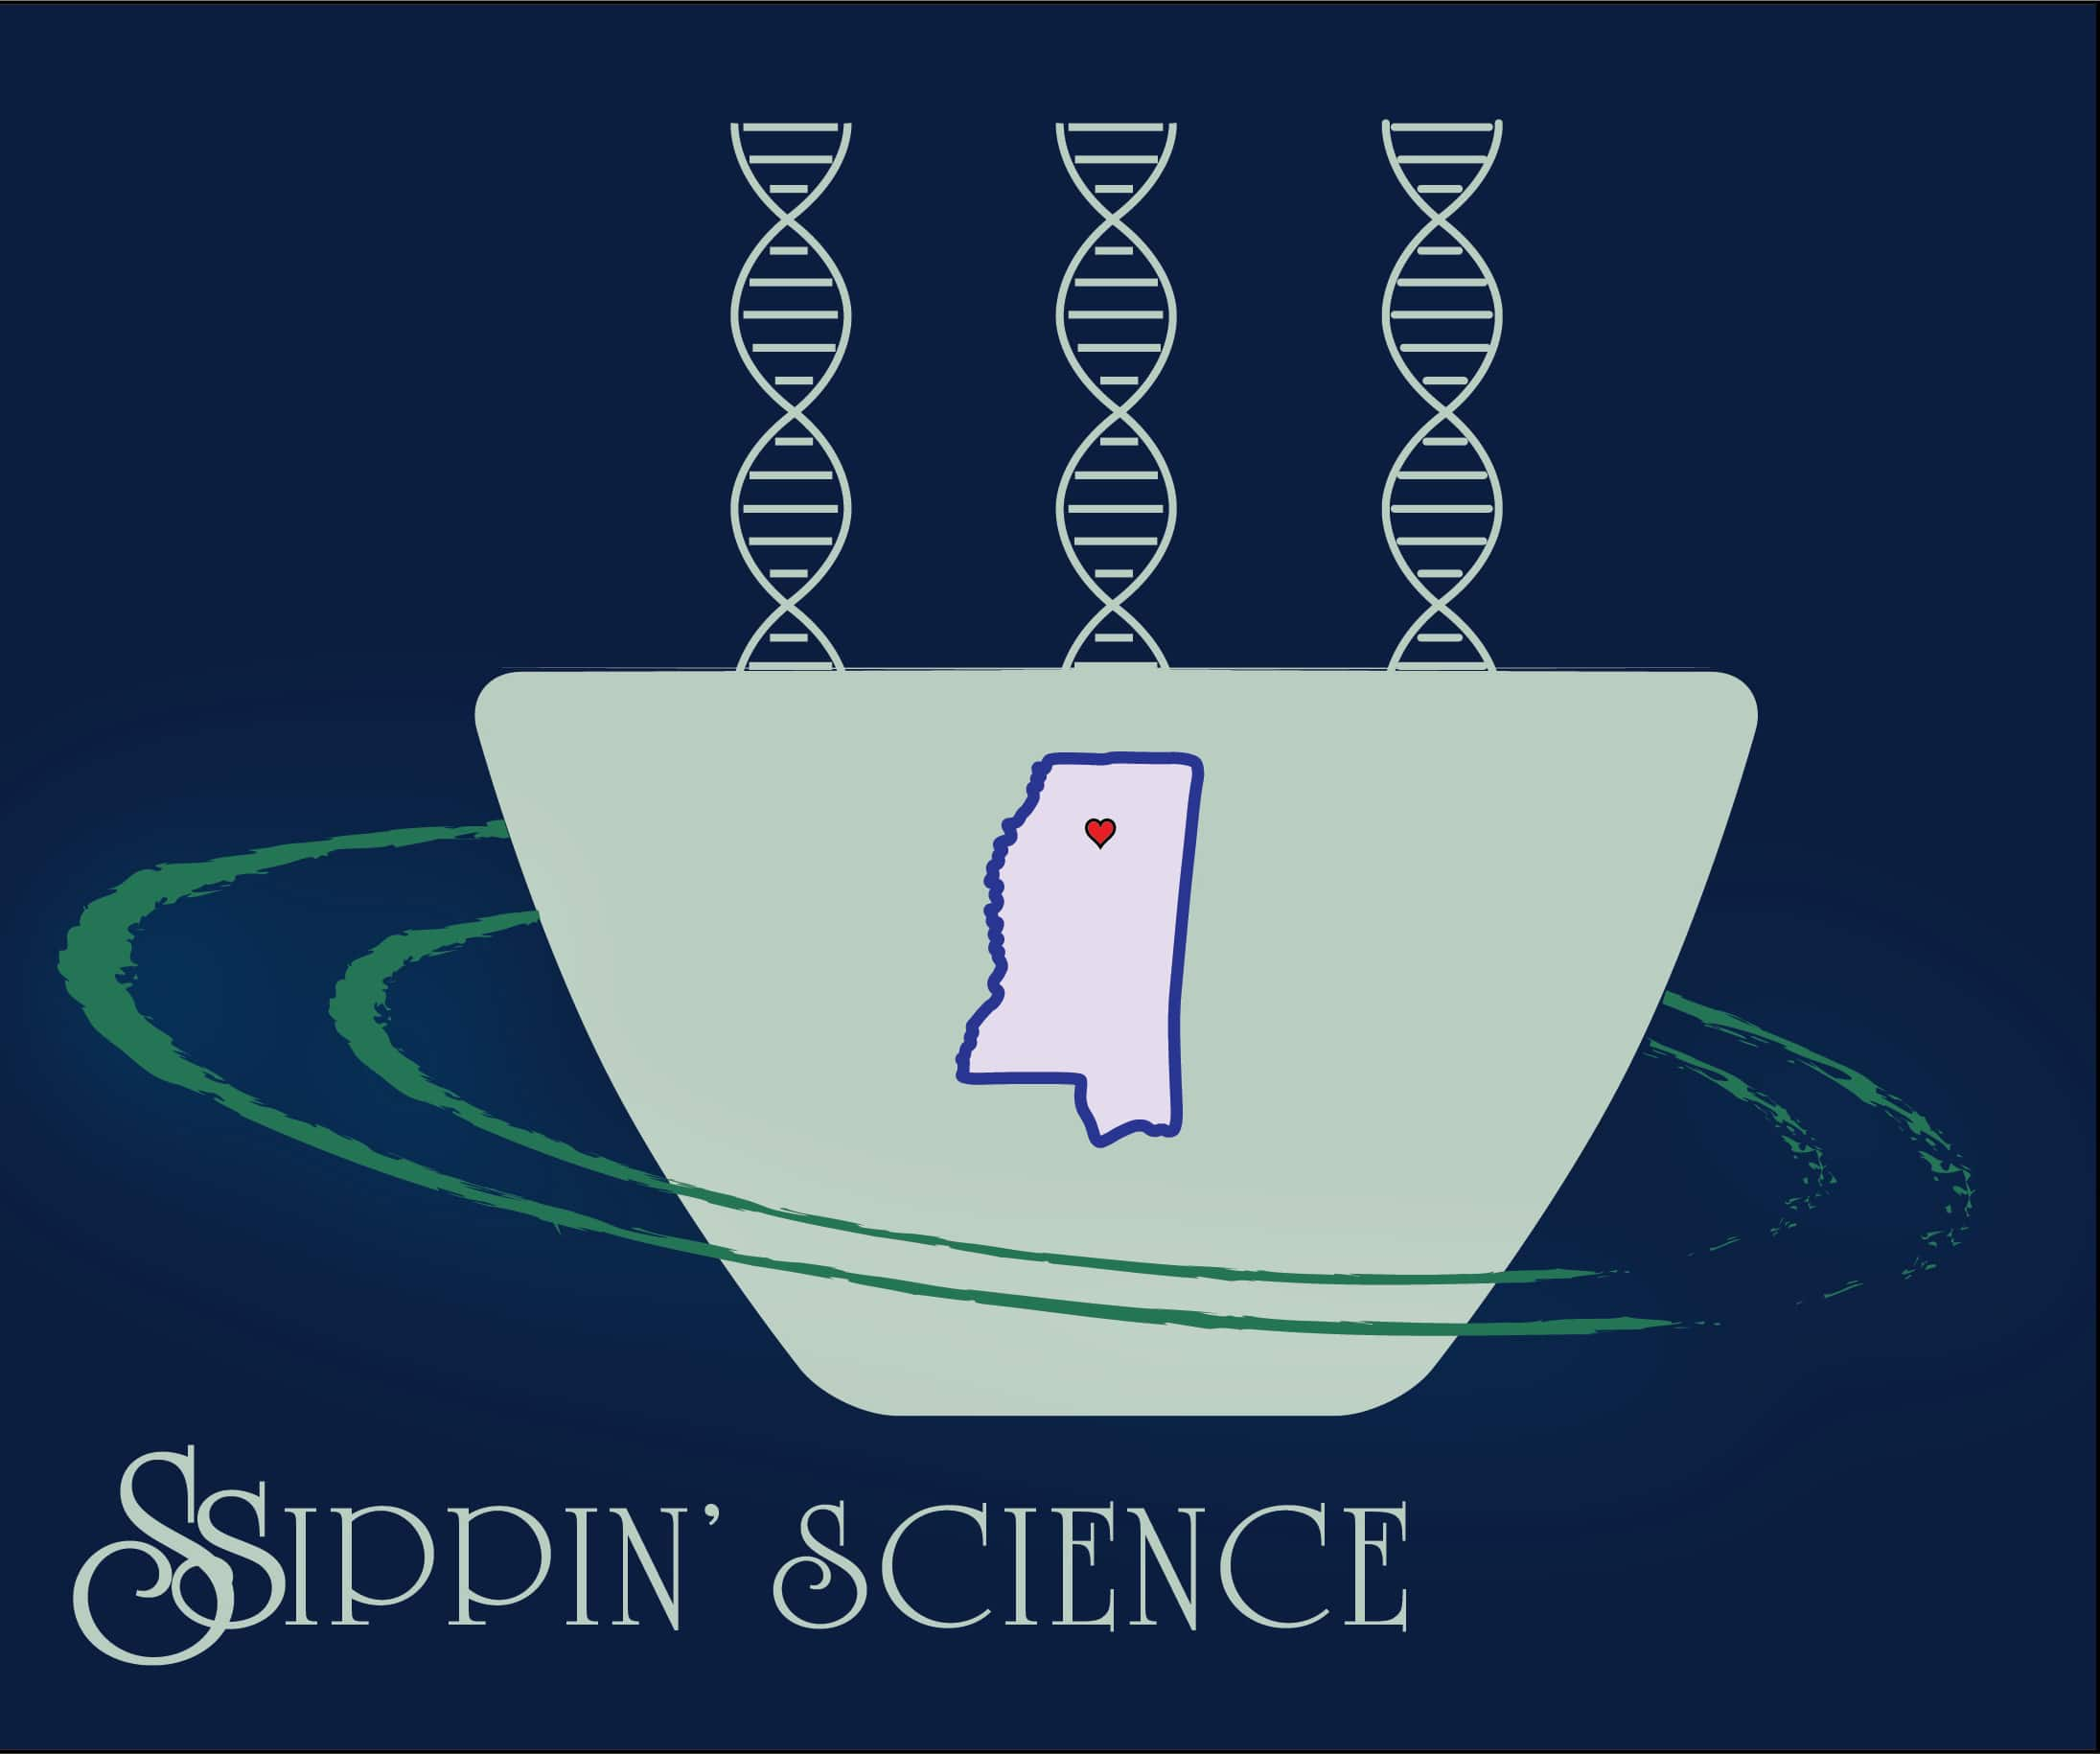 Ssippin' Science logo